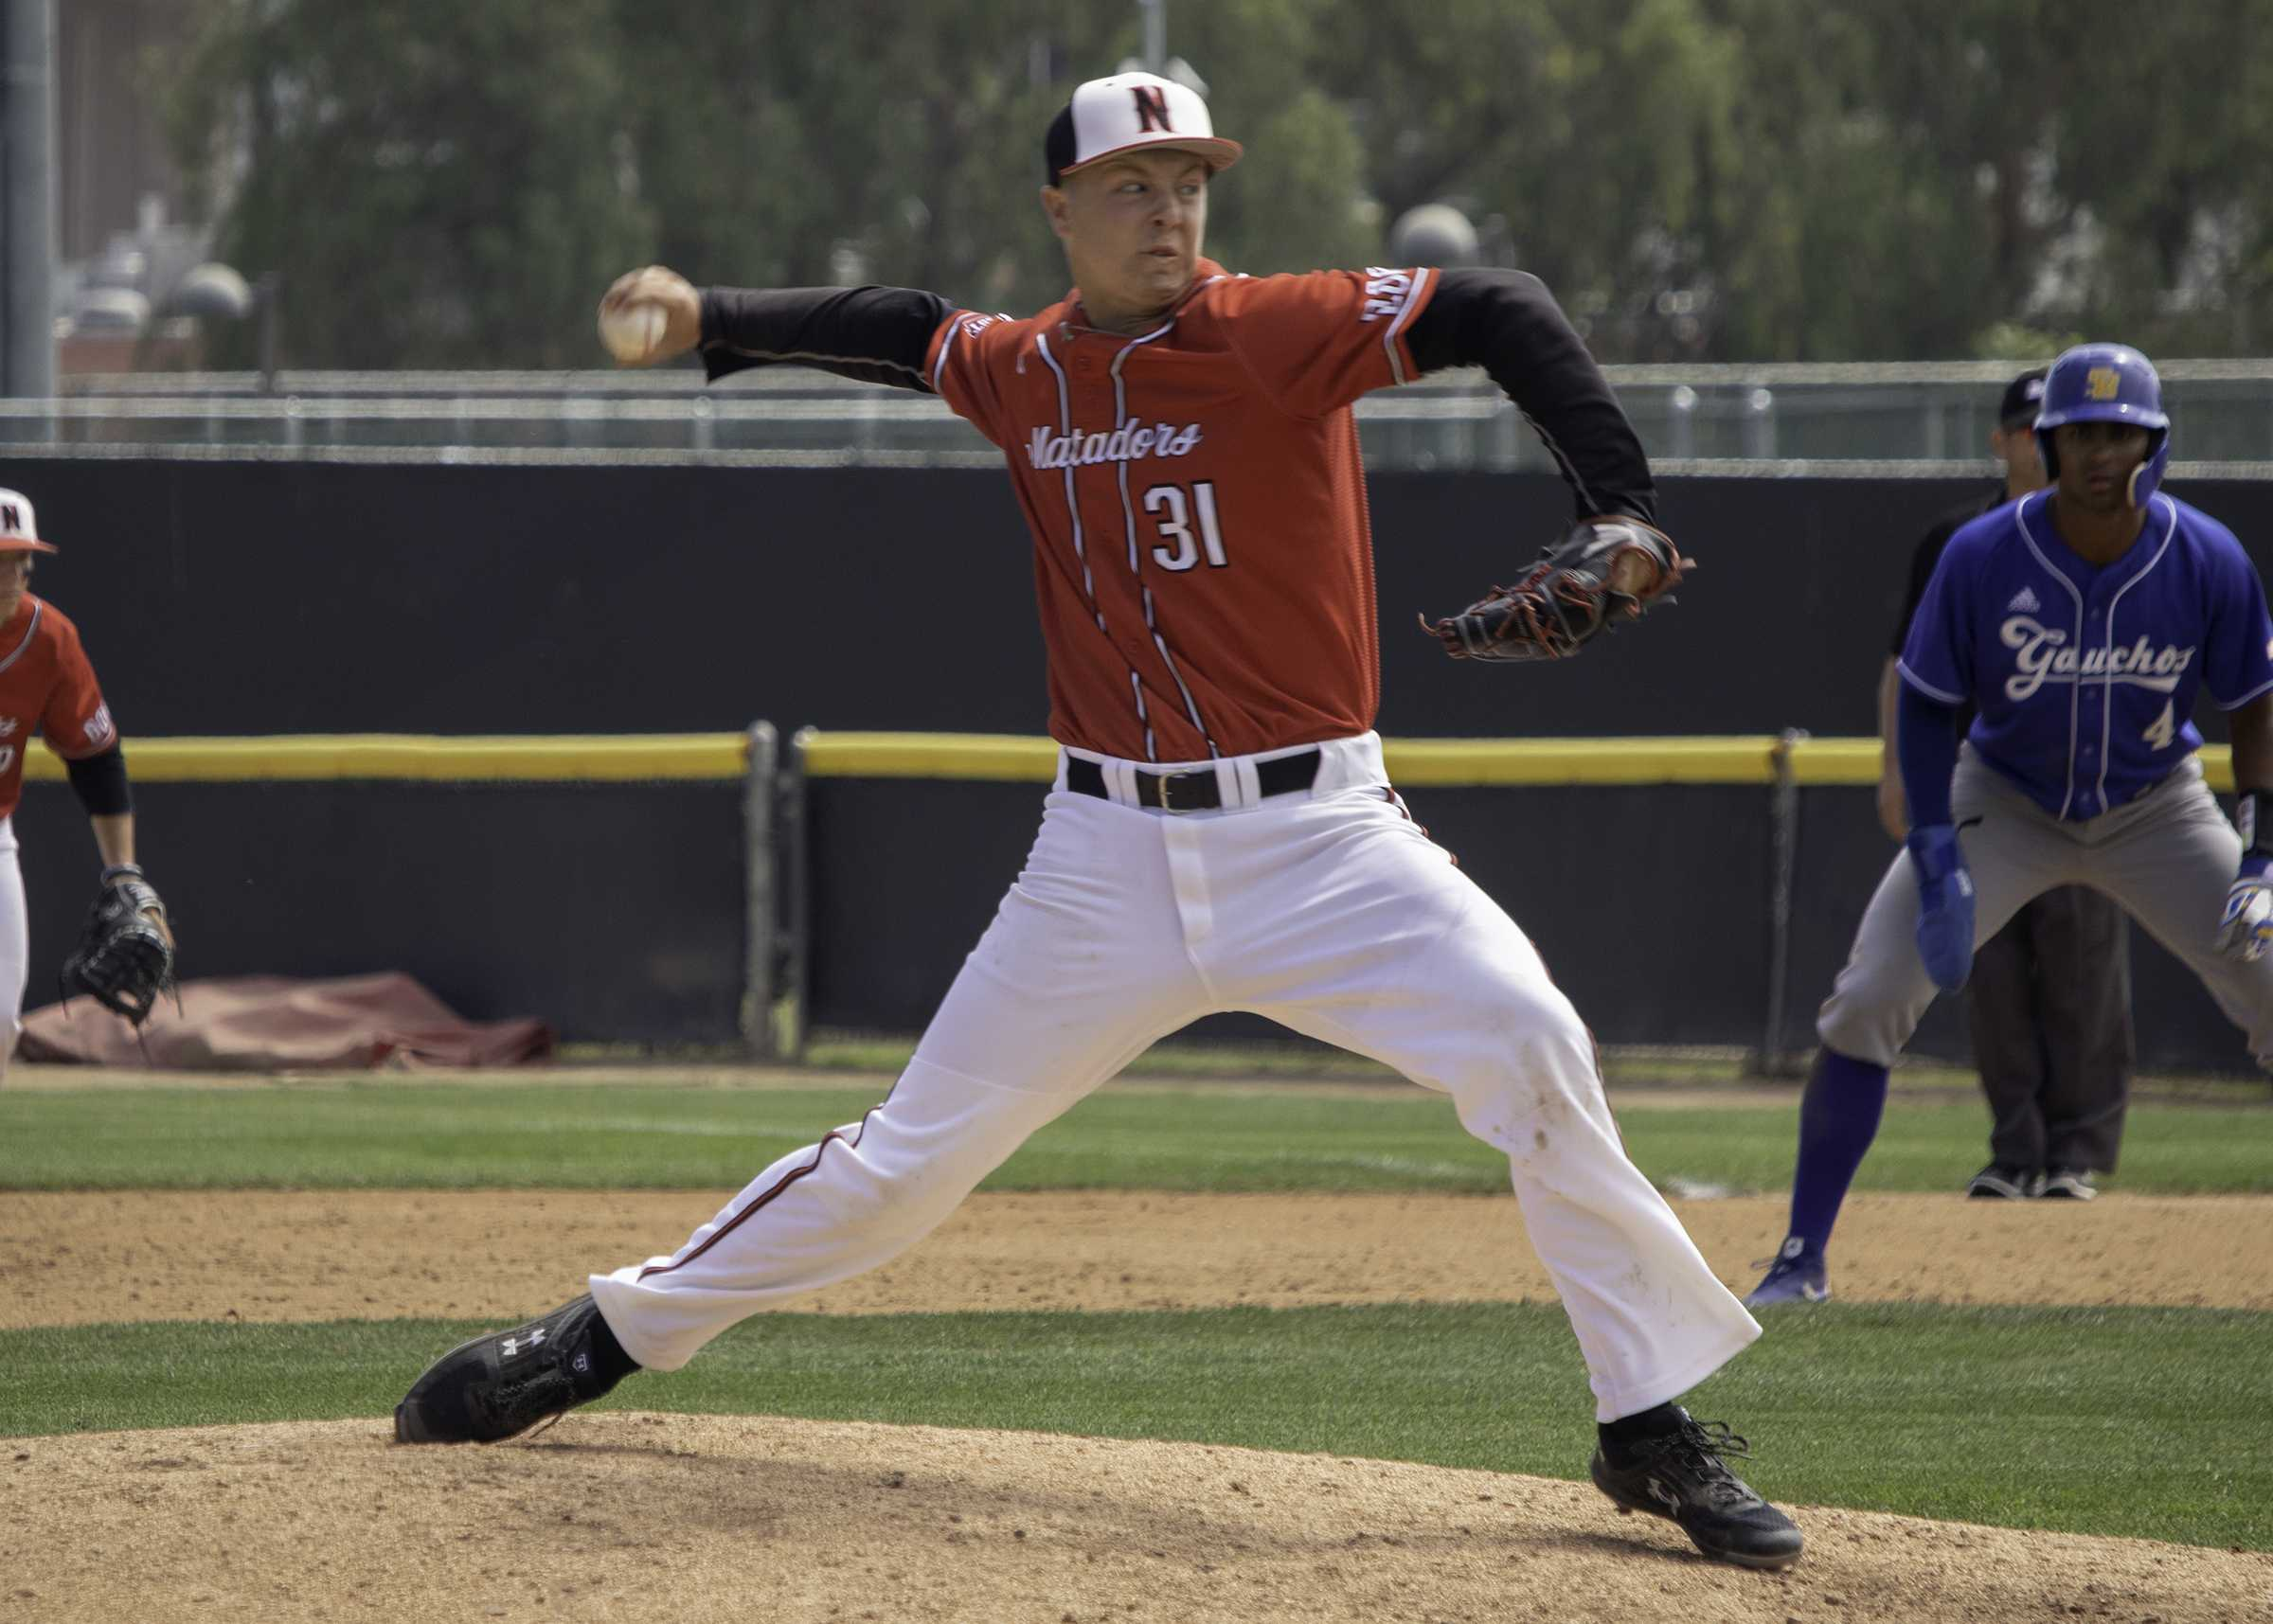 Sophomore Blake Schriever in the fifth inning of the Matadors' loss to UC Santa Barbara on Sunday. Schriever entered the game with one out in the fifth inning and held the Gauchos to just one run over 3 2/3 before losing the game in the ninth. Photo credit: Tyler Wainfeld